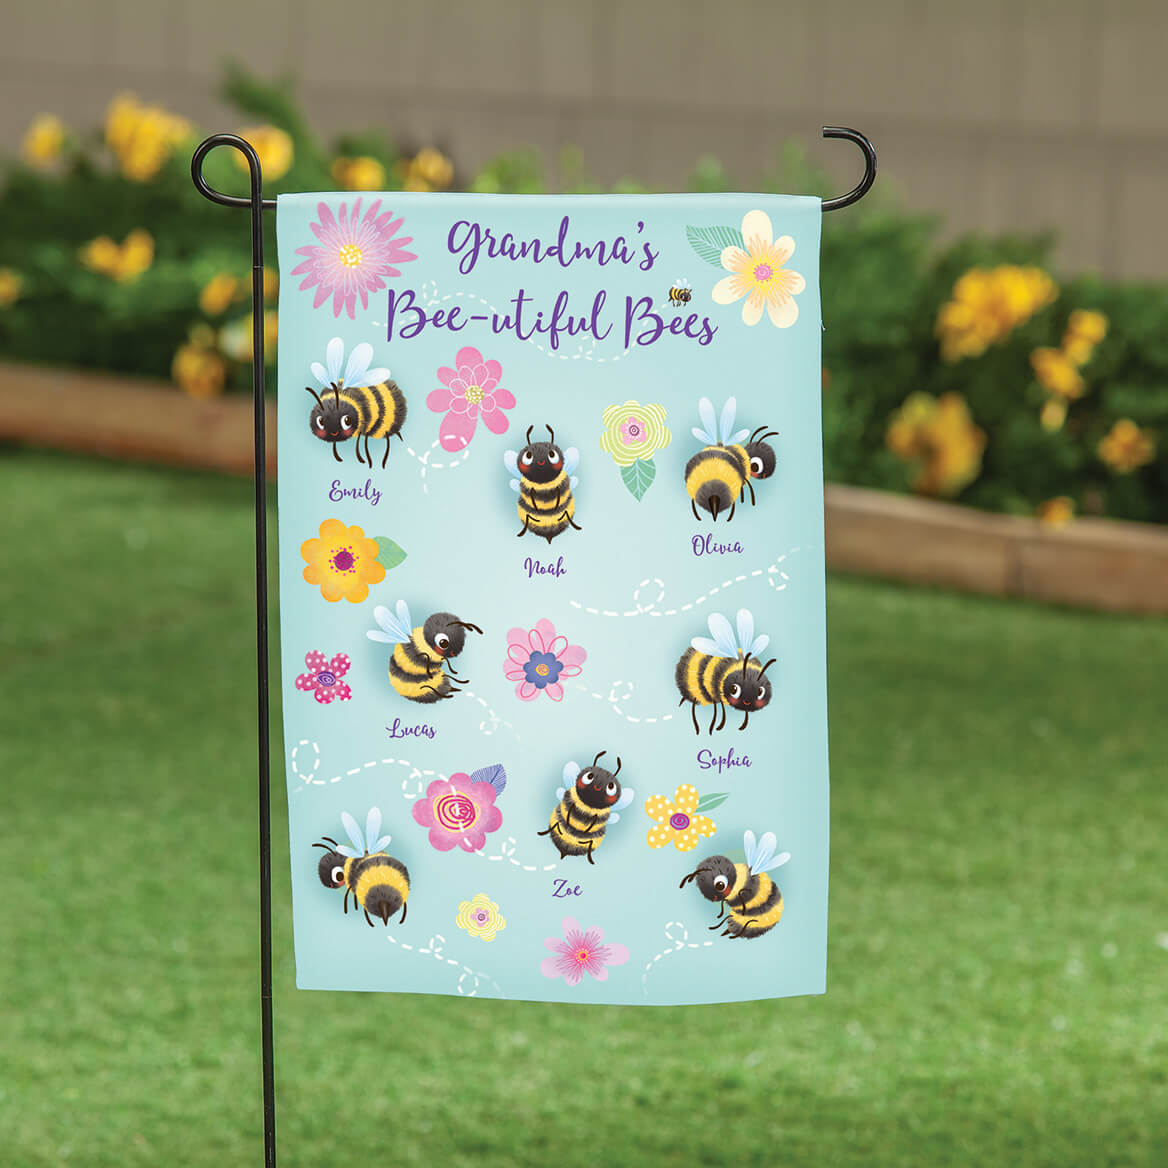 Personalized Beautiful Bees Garden Flag-369489